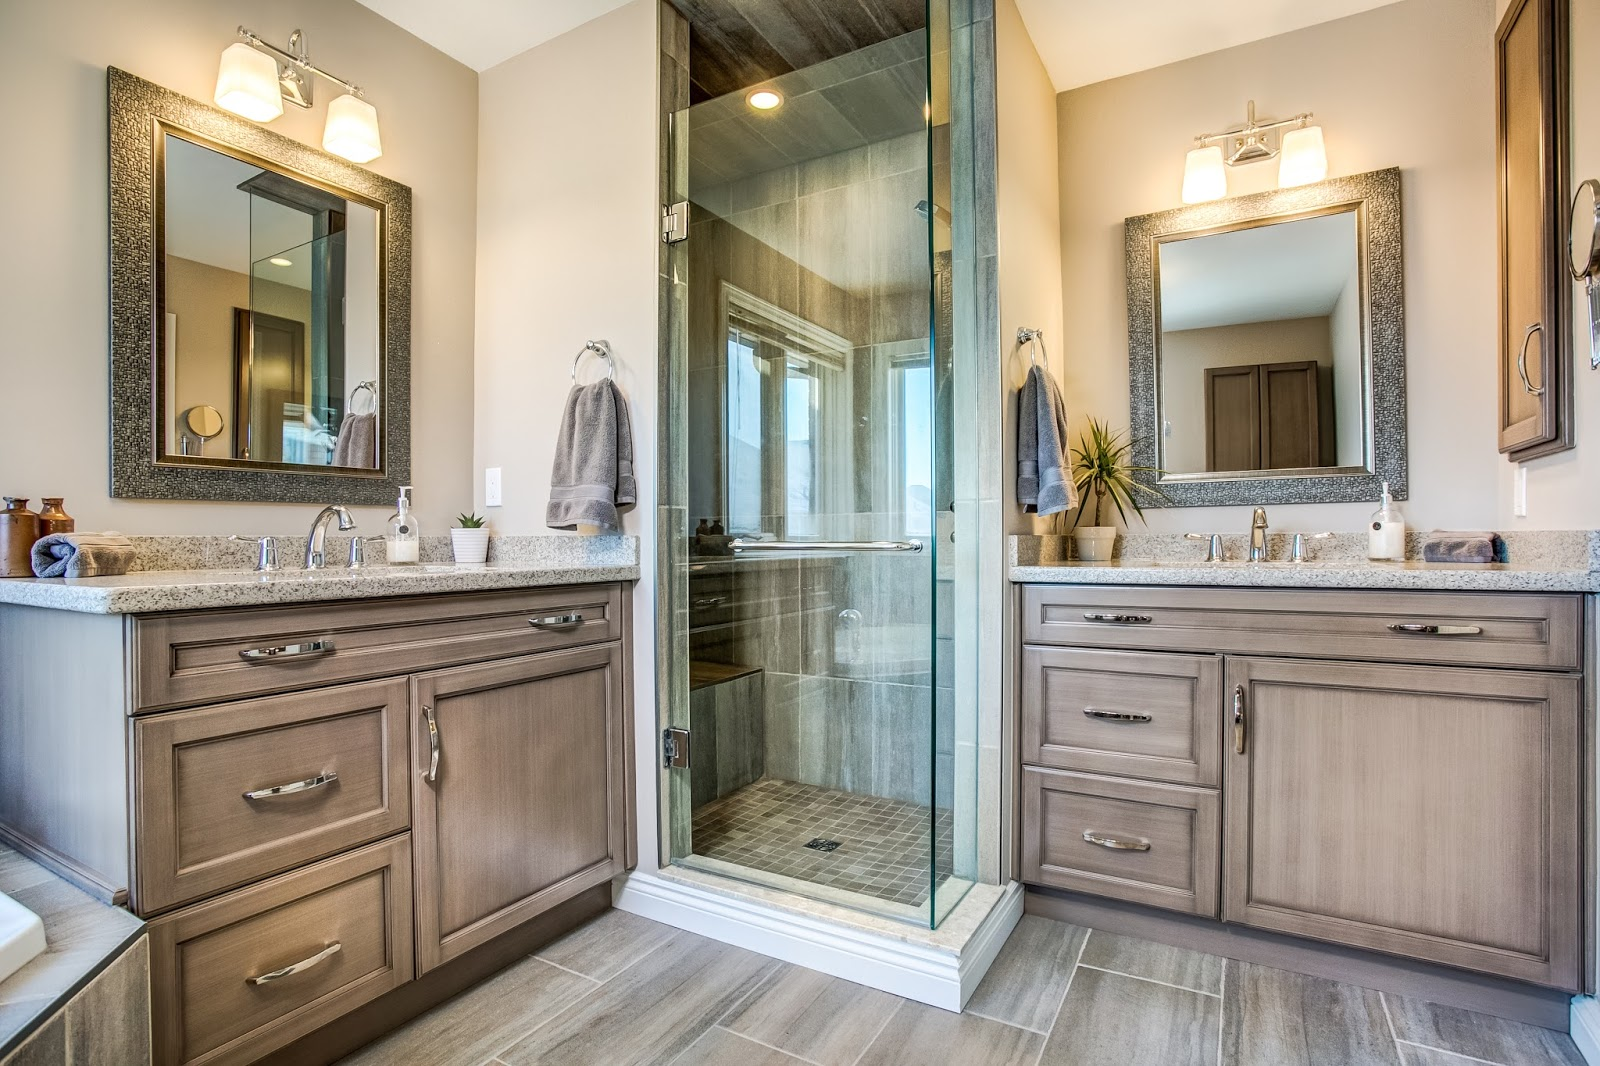 Top 15 Bathroom Remodel Ideas, Costs, and ROI Details for DIY ...